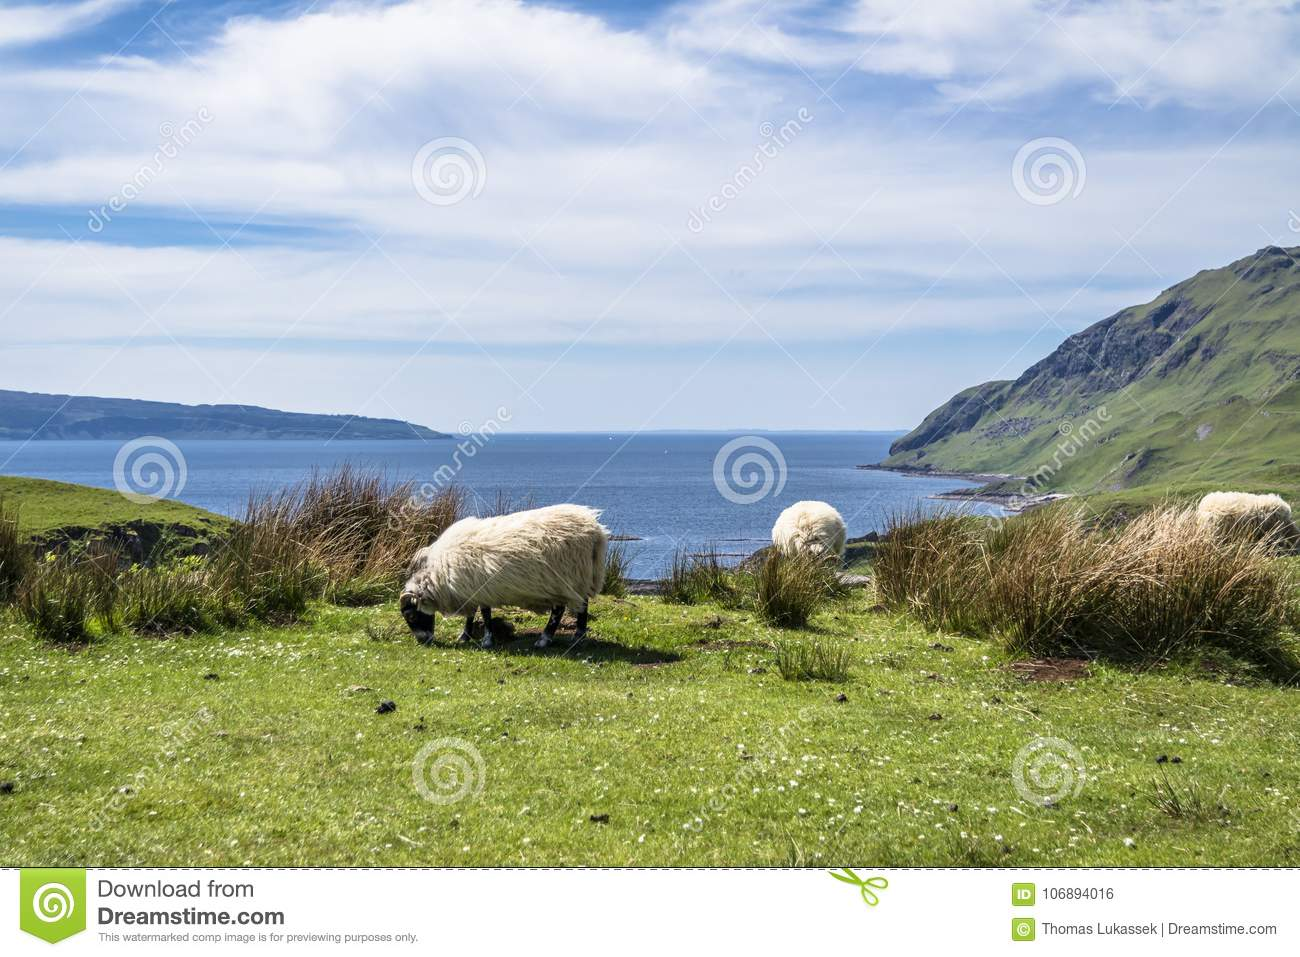 Sheep and goat at the bay called Camas nan Geall, Ardnamurchan